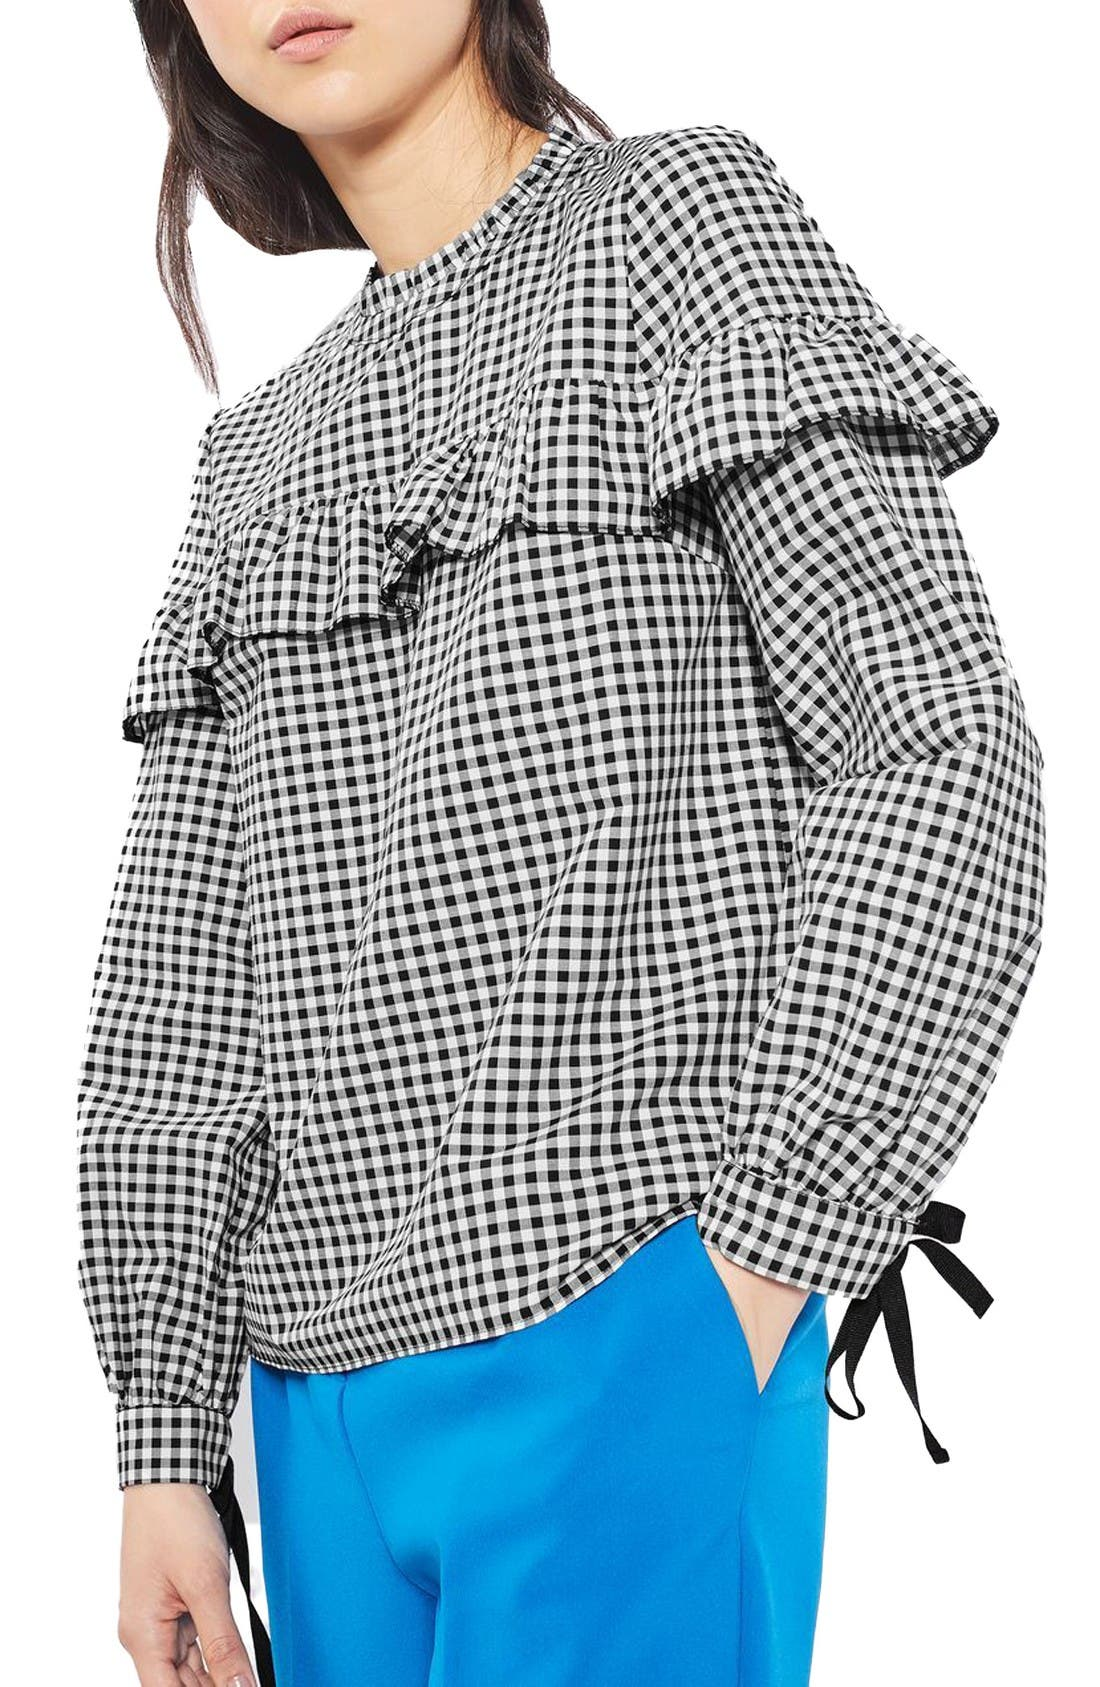 Alternate Image 1 Selected - Topshop Pixie Ruffle Gingham Top